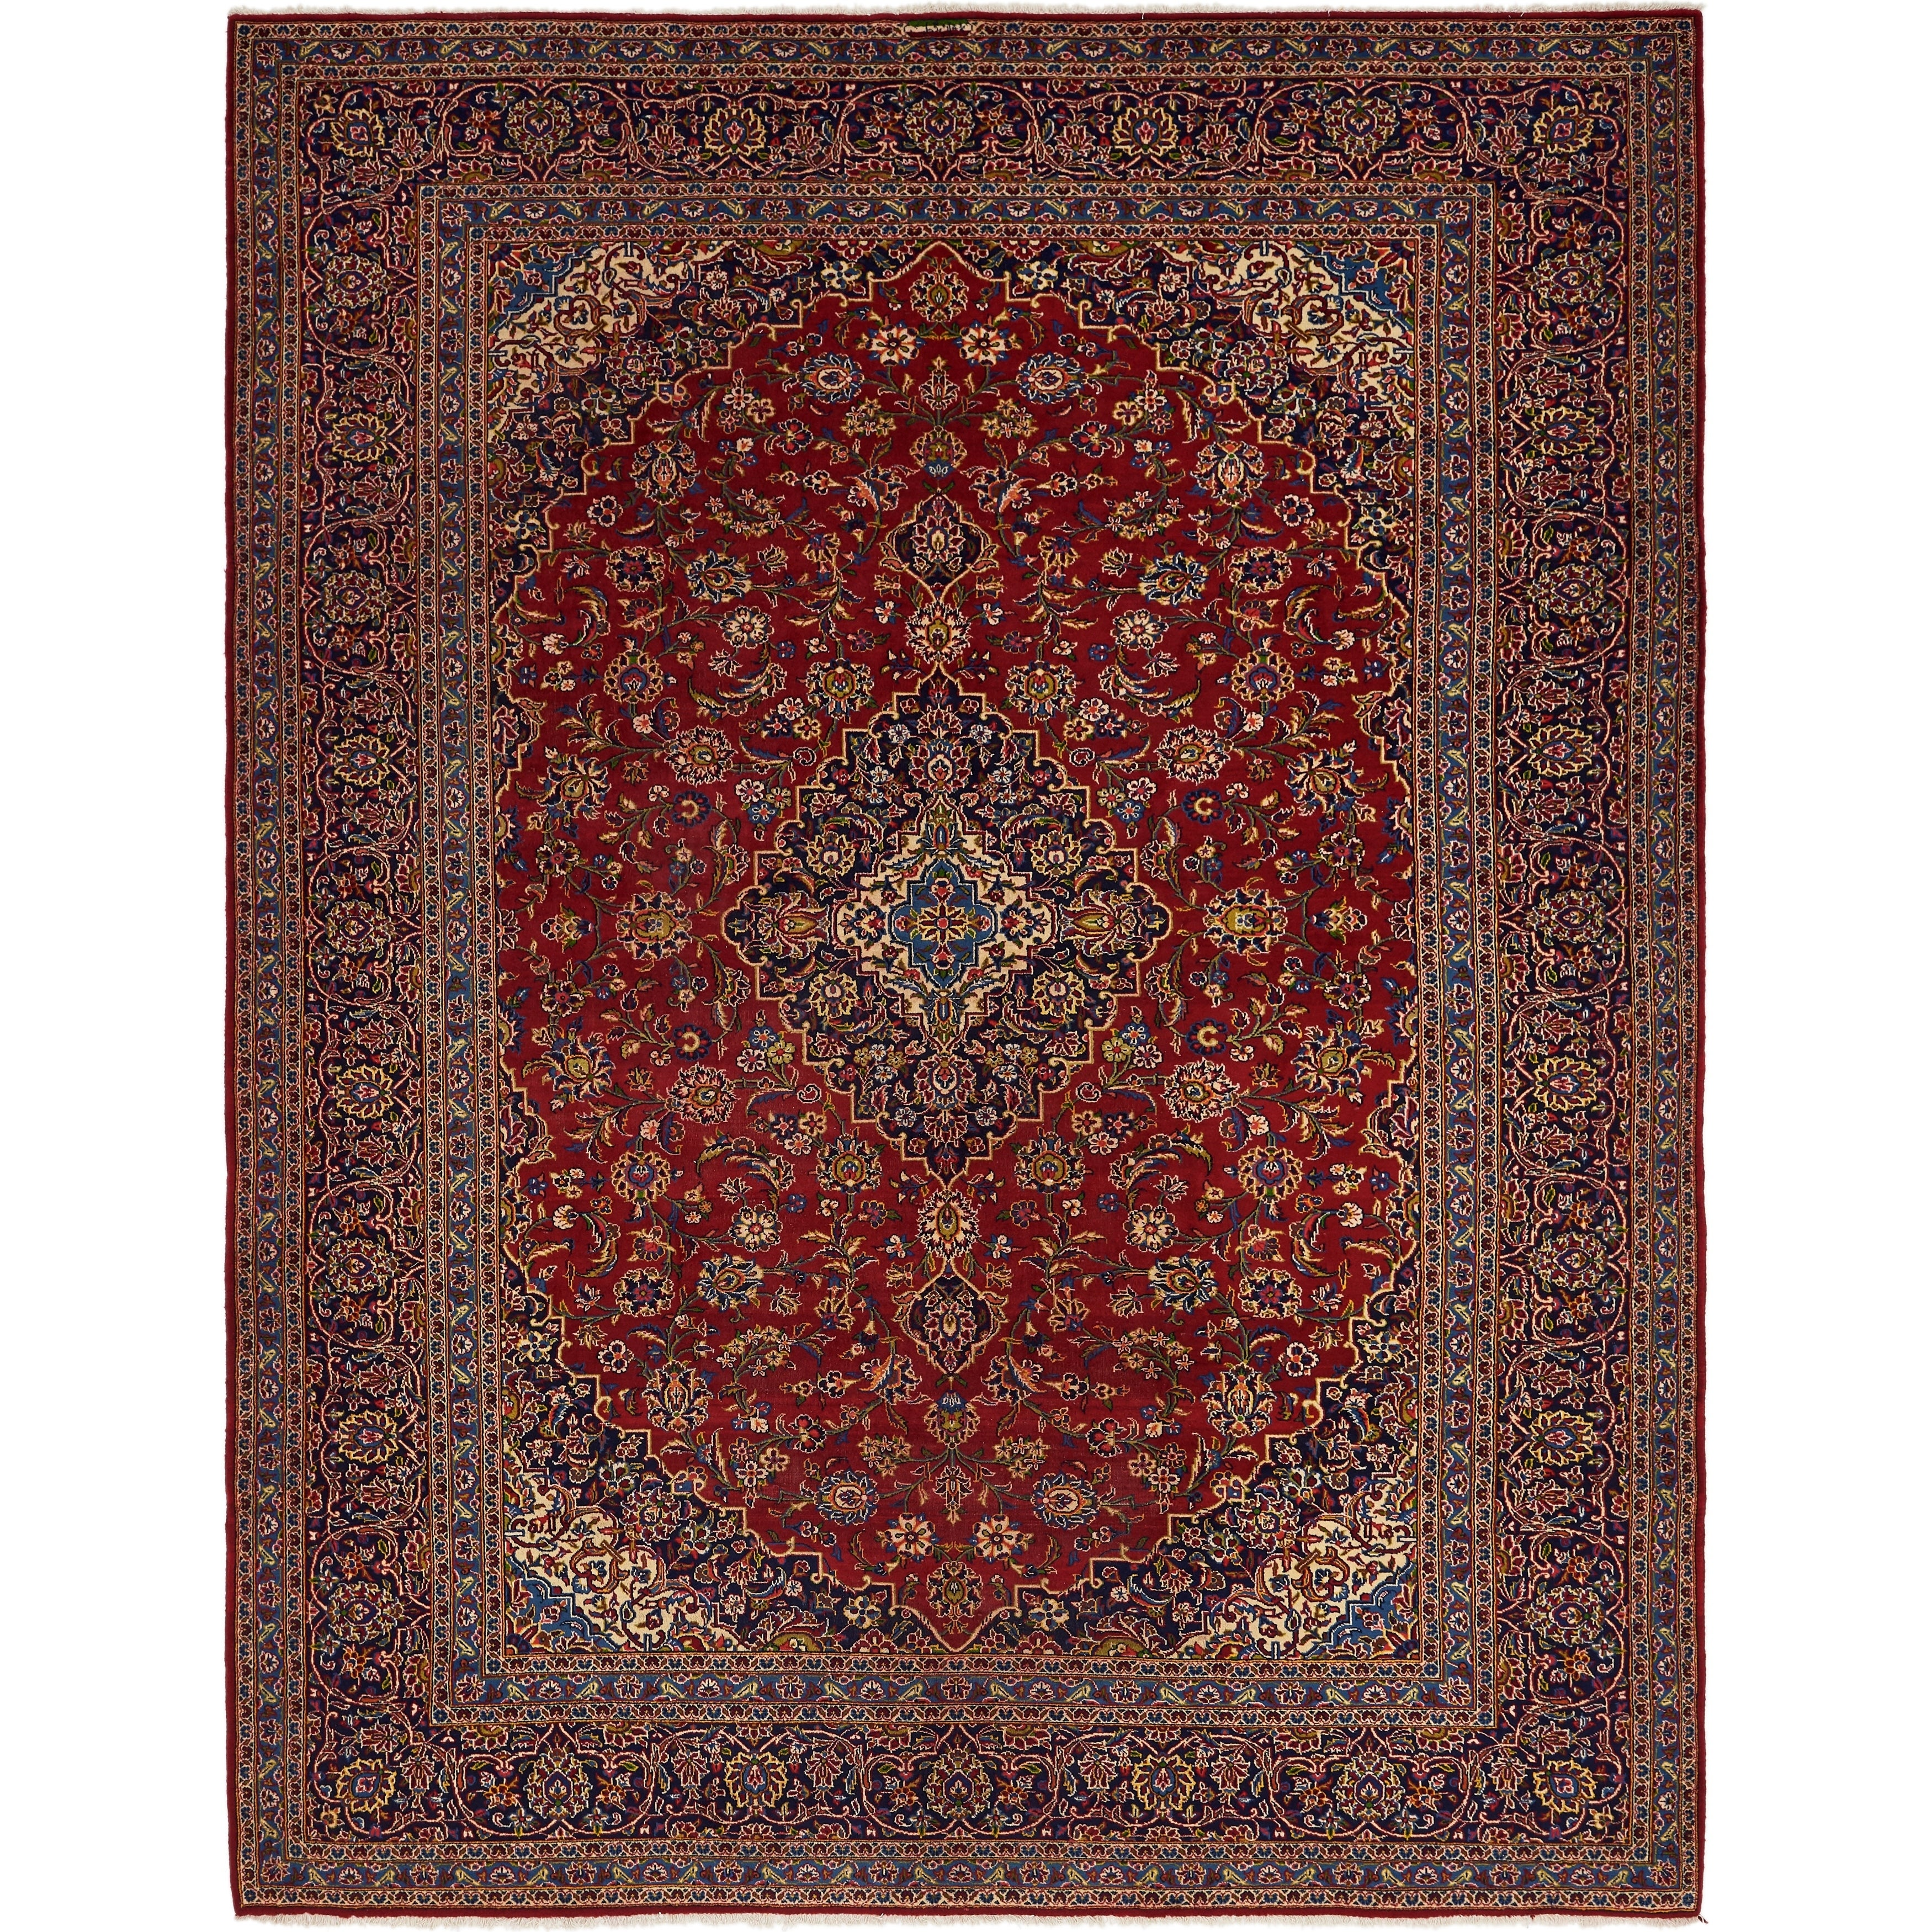 Hand Knotted Kashan Semi Antique Wool Area Rug - 9 10 x 13 (Red - 9 10 x 13)